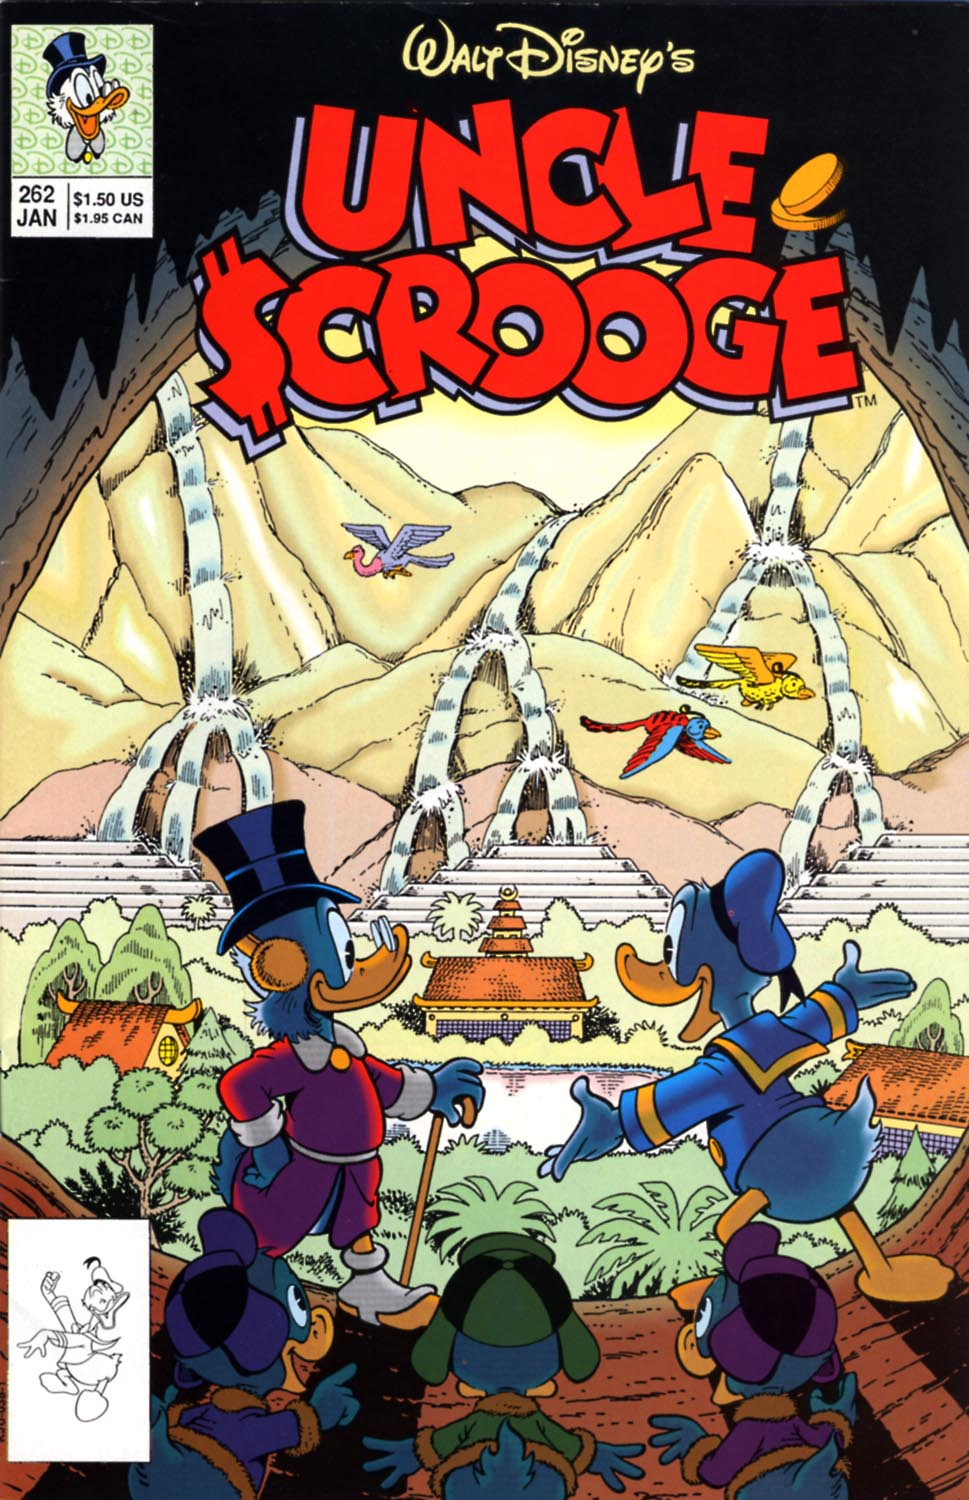 Read online Uncle Scrooge (1953) comic -  Issue #262 - 1